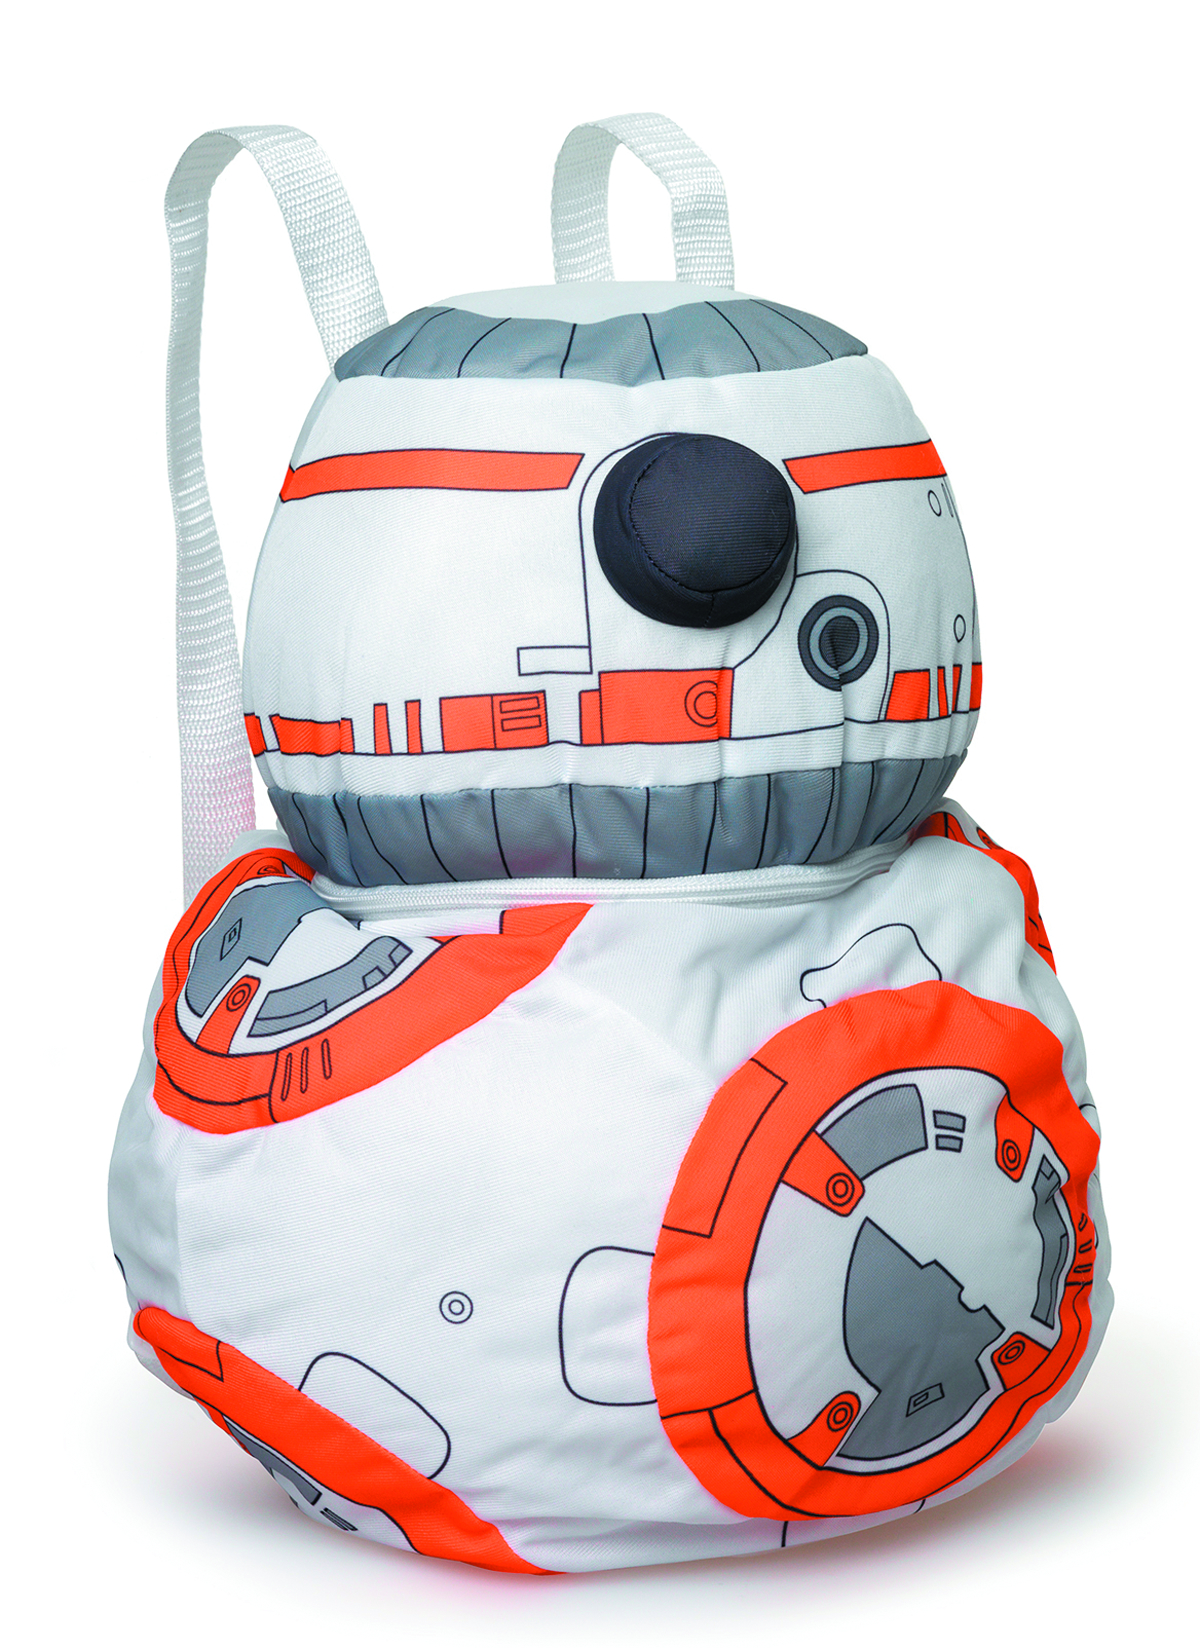 STAR WARS E7 BB-8 BACK BUDDY